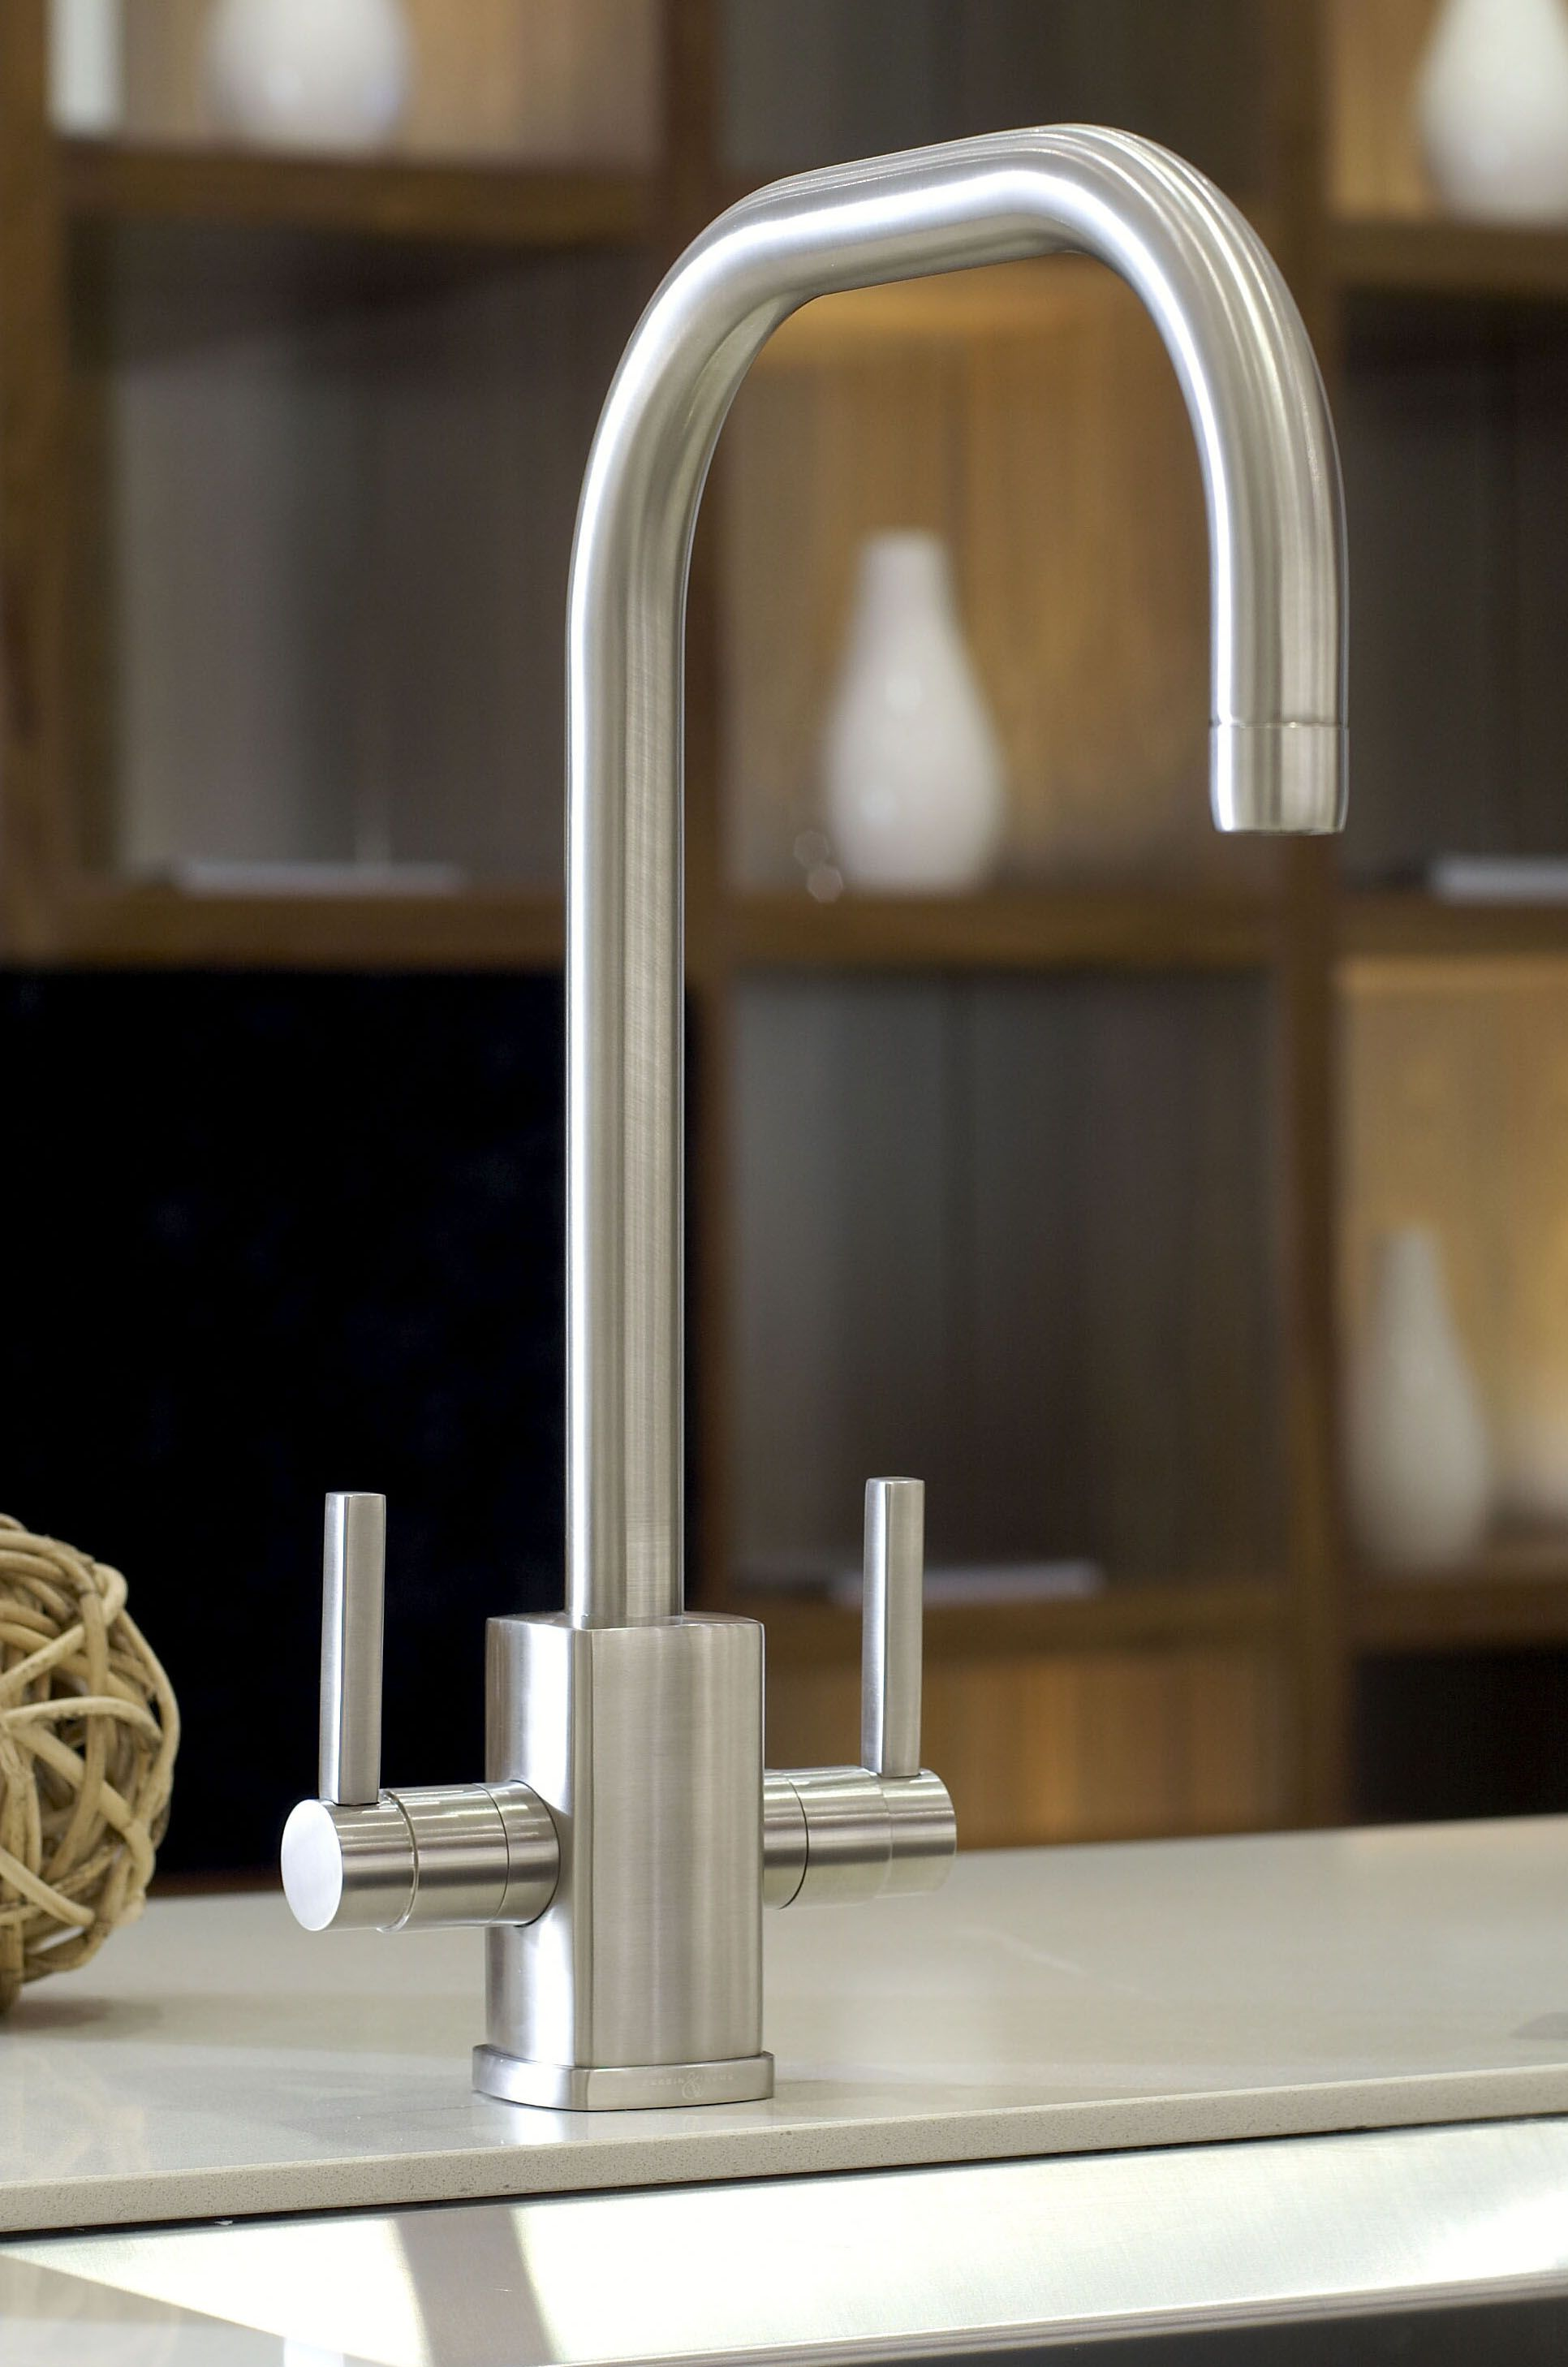 Perrin & Rowe Rubiq Sink Mixer with \'U\' Spout, 4210PF, from the ...